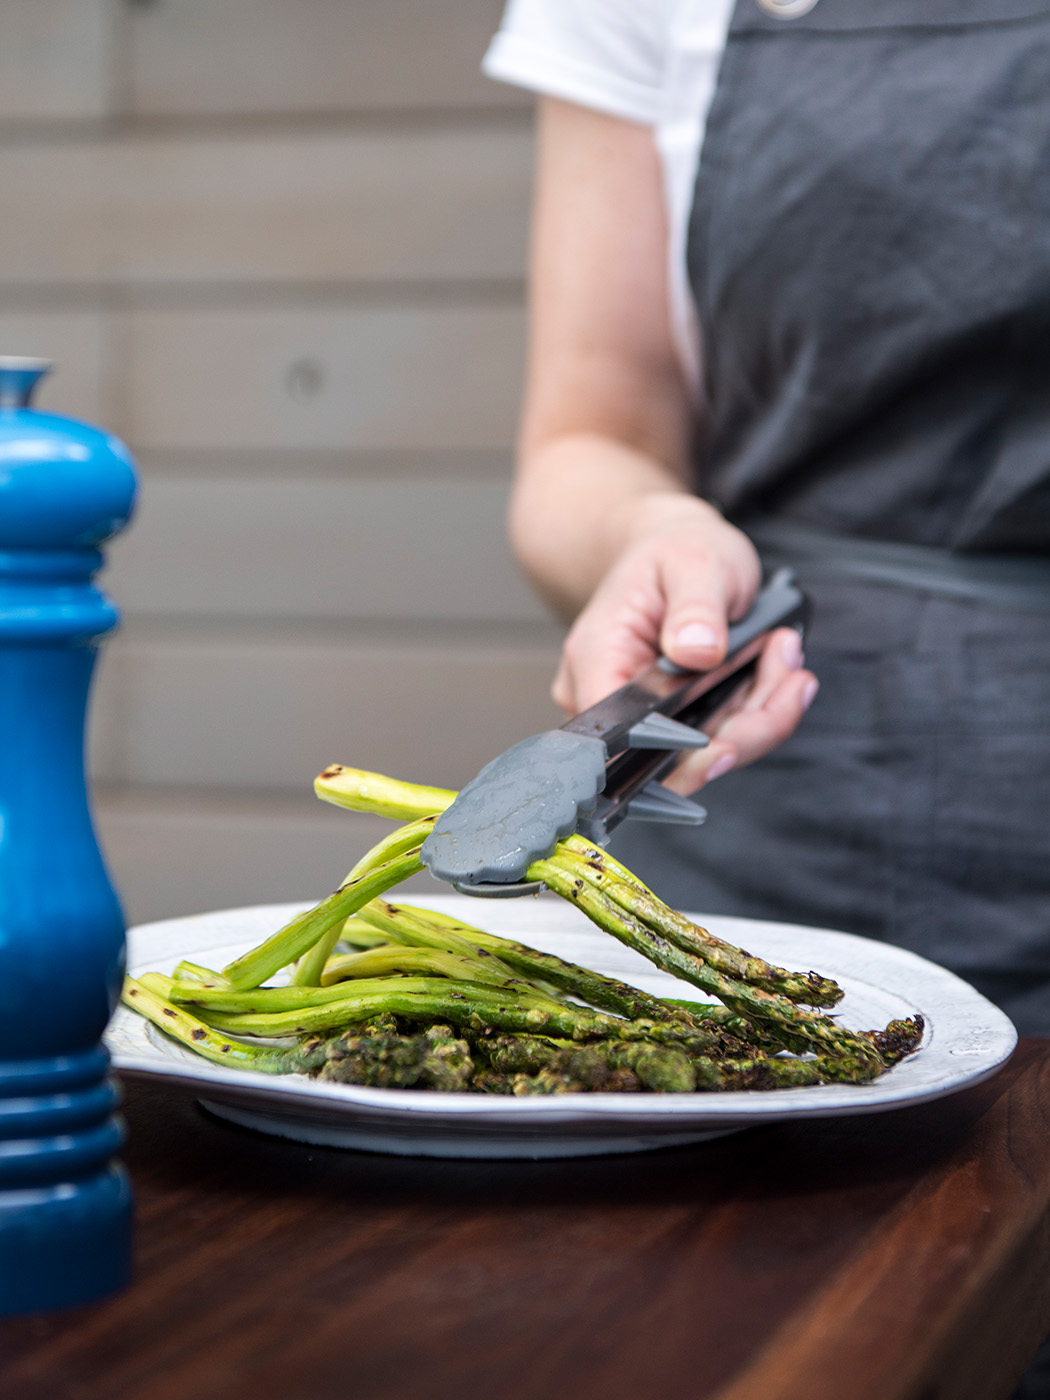 Deborah_Farnault_Food_Network_How-To-Win-Summer-Grilled-Asparagus-Plating-Asparagus-3x4-1093.jpg